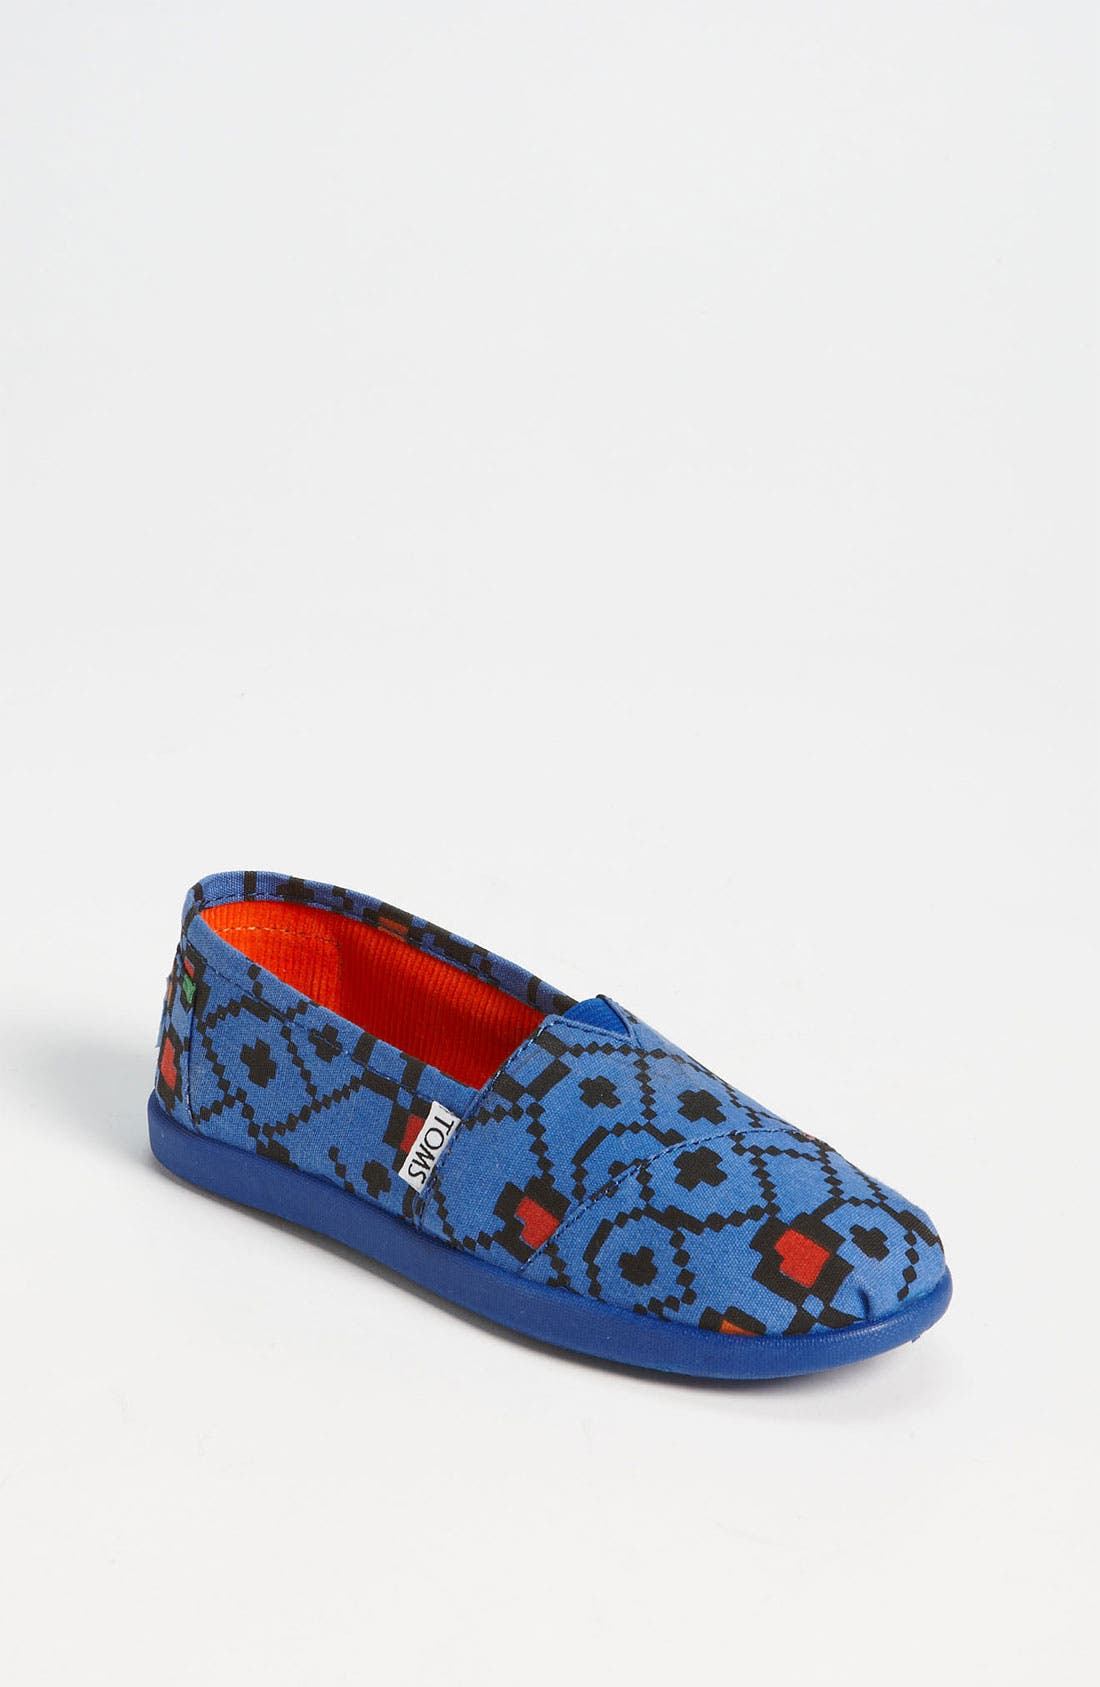 Alternate Image 1 Selected - TOMS 'Classic Youth - Geo Squares' Slip-On (Toddler, Little Kid & Big Kid)